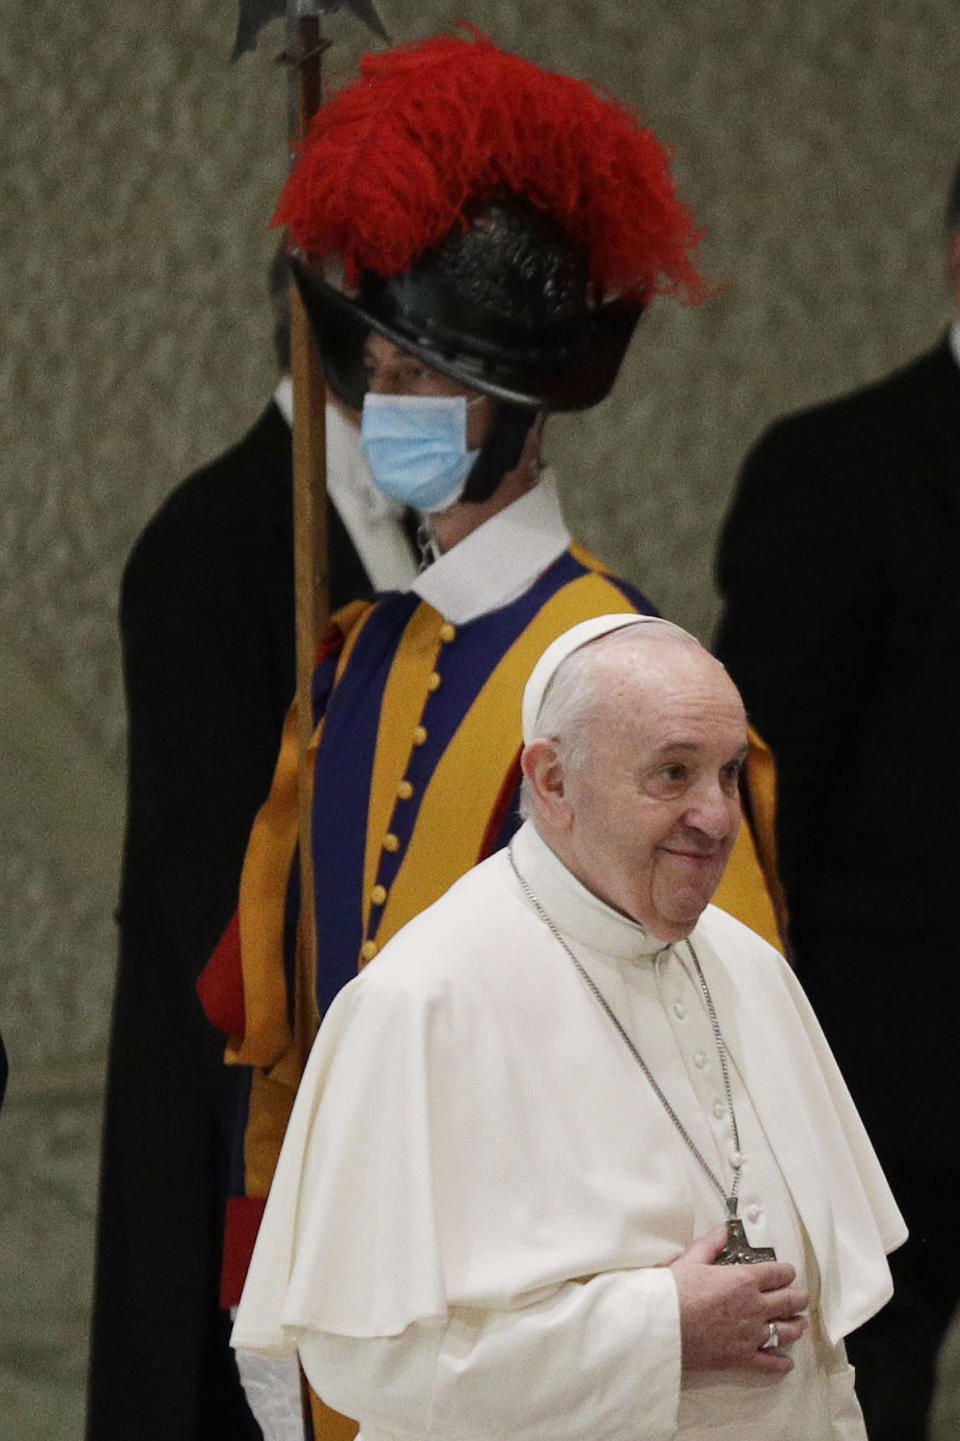 Pope Francis passes by a Swiss guard wearing a face mask to curb the spread of COVID-19 as he arrives in the Paul VI hall on the occasion of the weekly general audience at the Vatican, Wednesday, Oct. 21, 2020. (AP Photo/Gregorio Borgia)